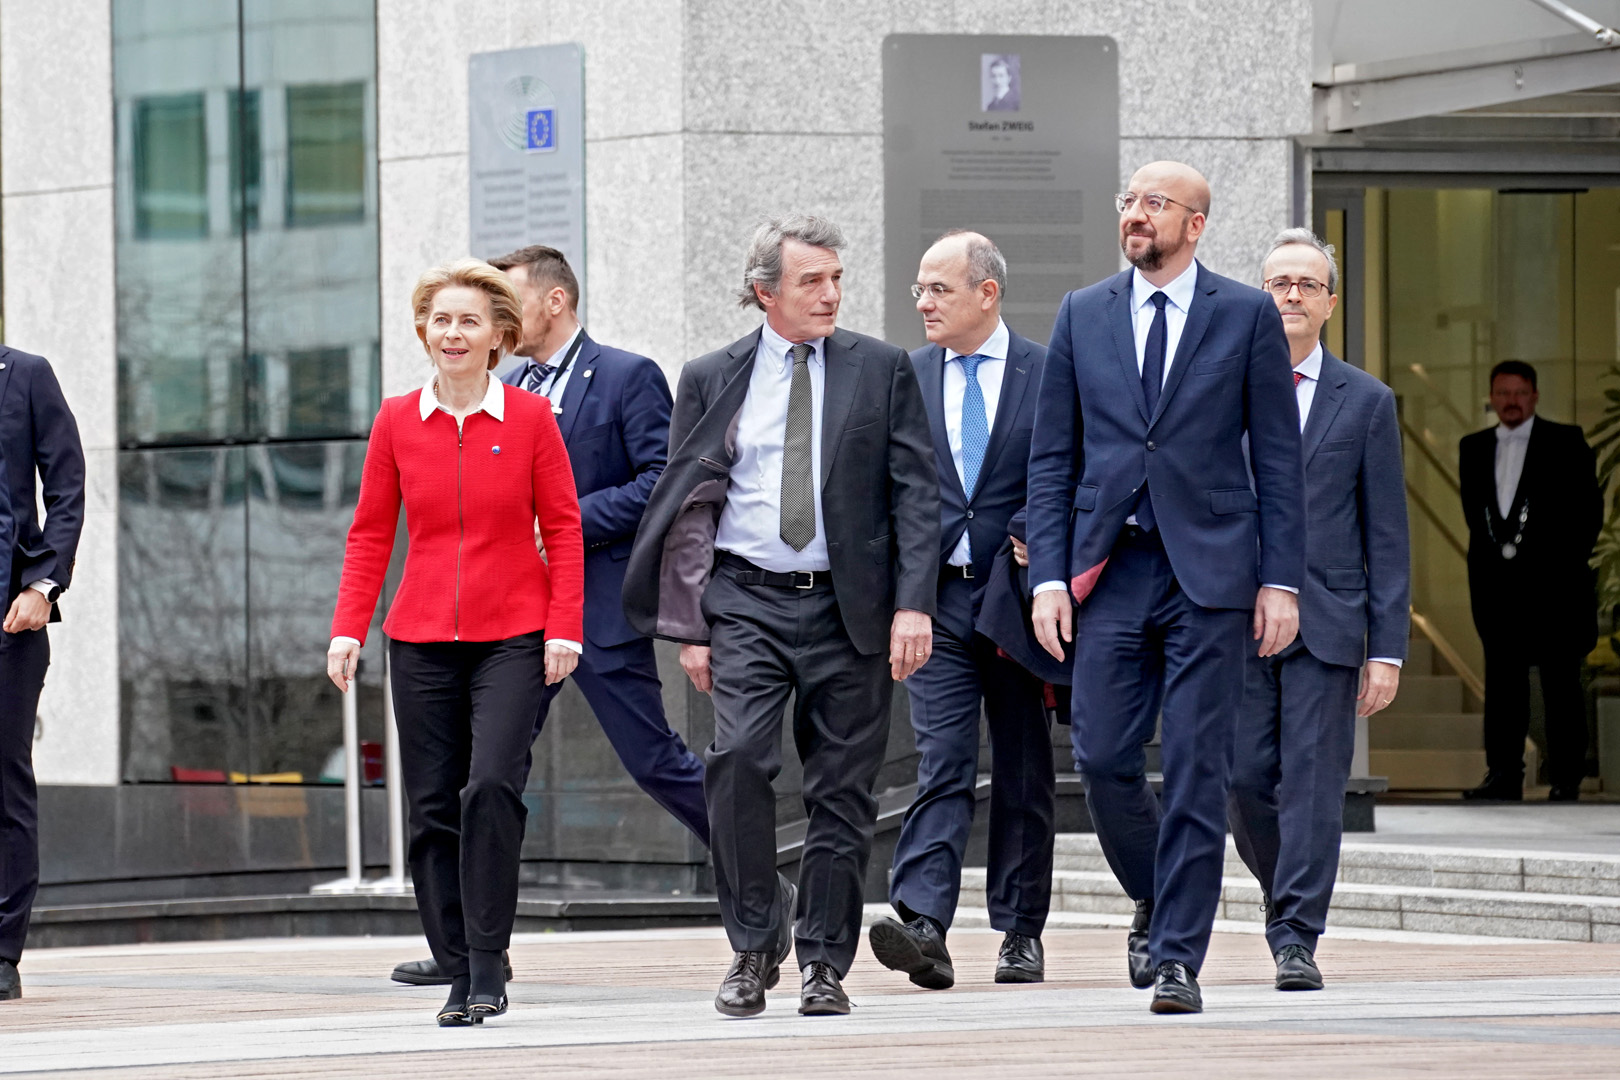 EU leaders herald 'new dawn for Europe' on Brexit day